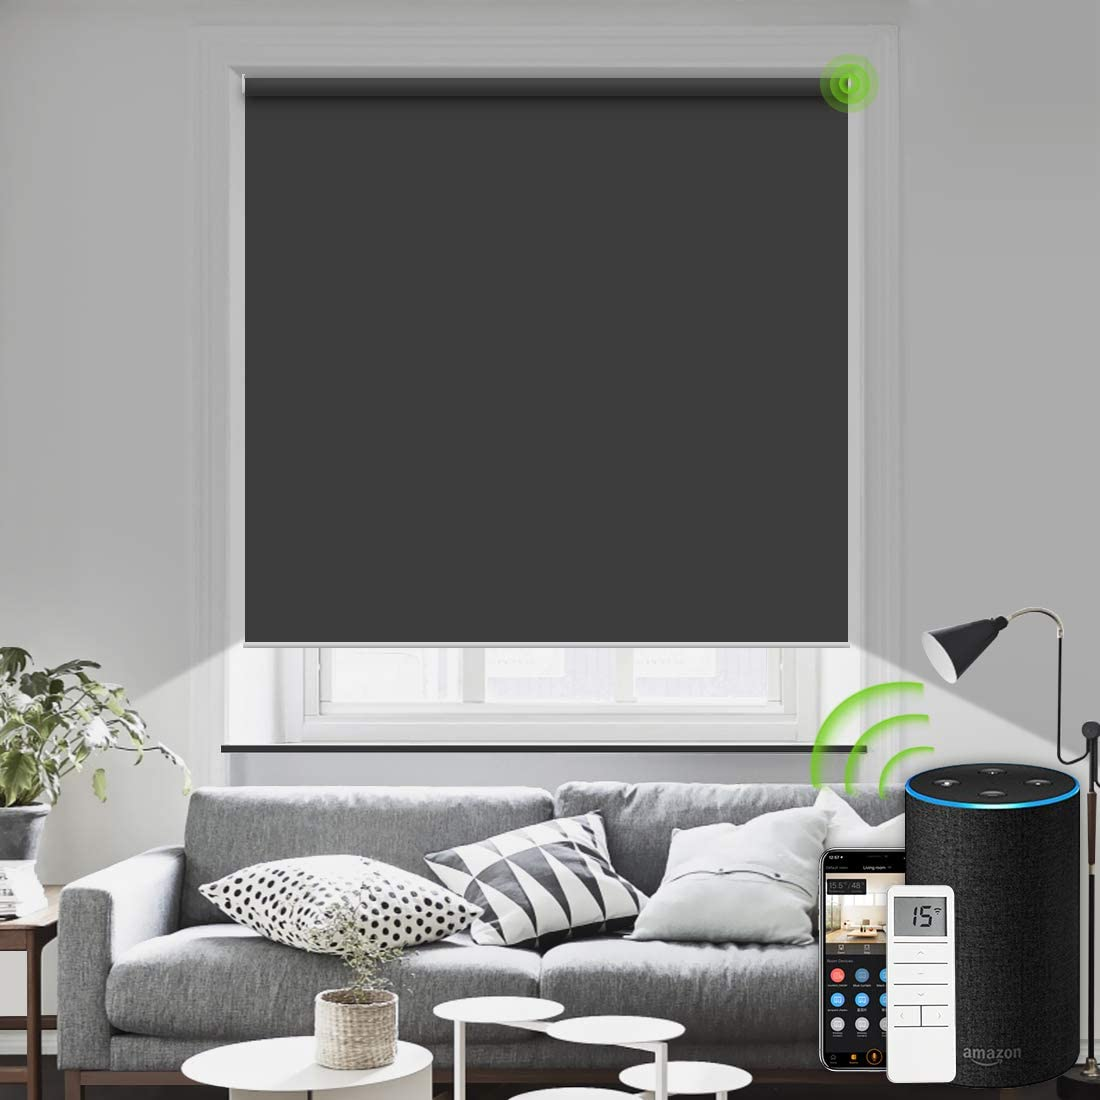 Motorized Blinds Remote Control Window Roller Shade Wireless Rechargeable 100 Blackout Window Shades for Office and Home Dark Grey